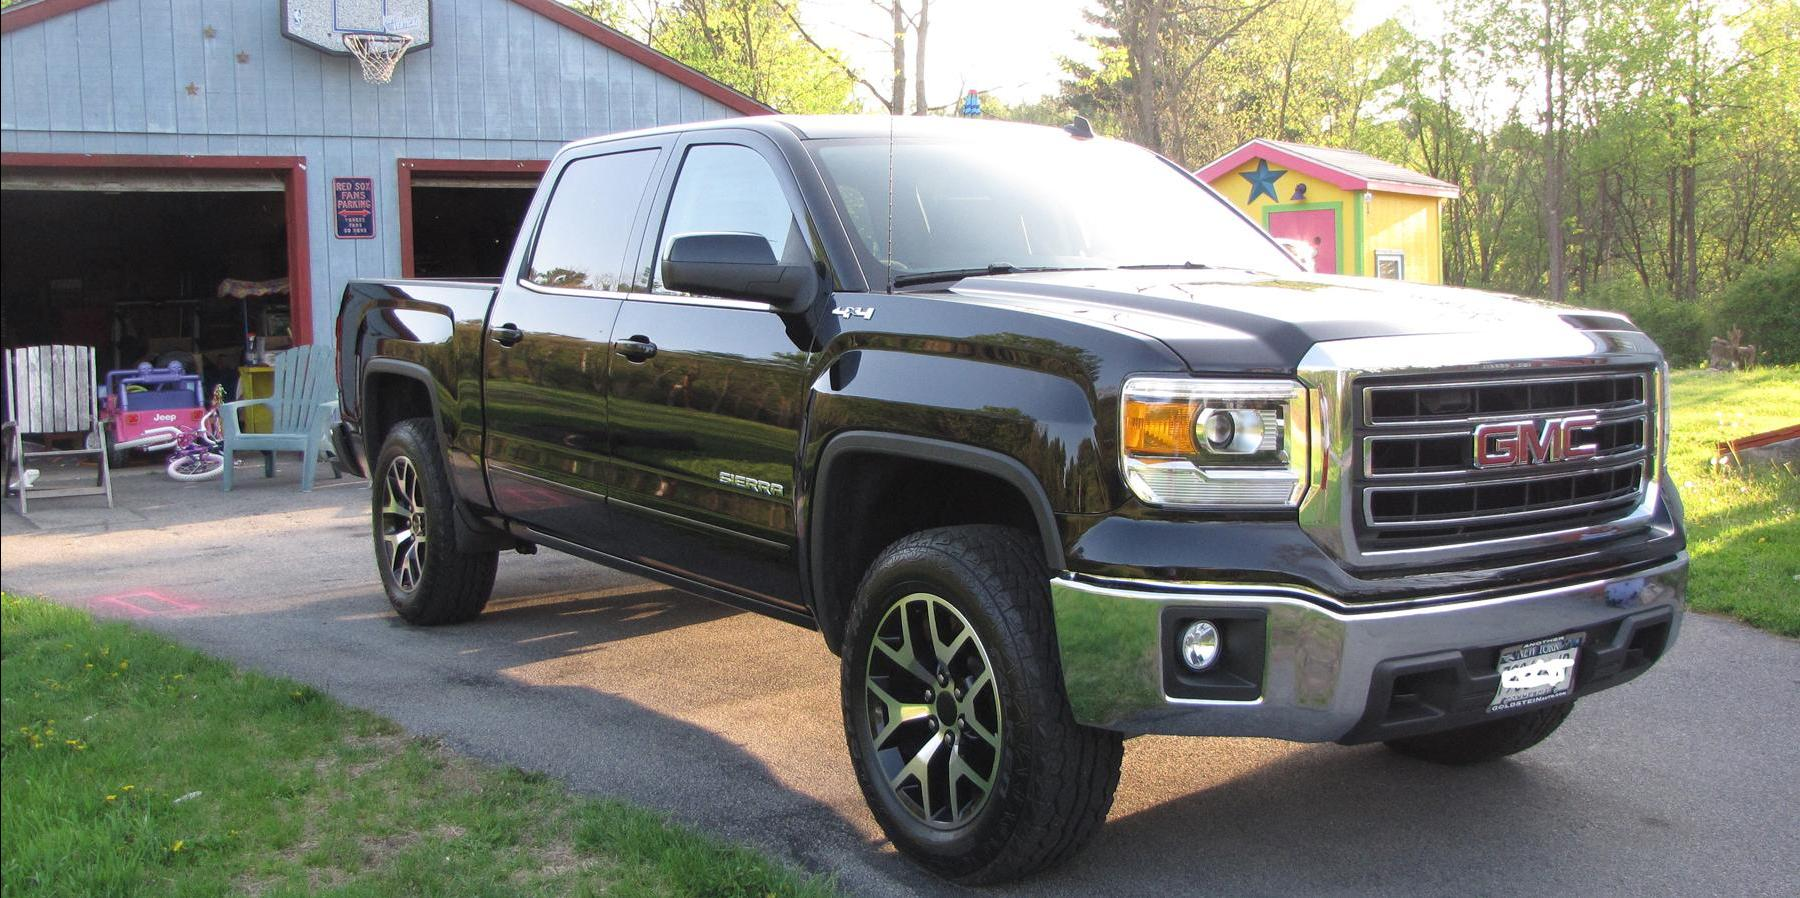 Jdtanner129 2014 Gmc Sierra 1500 Crew Cabsle Specs Photos Modification Info At Cardomain